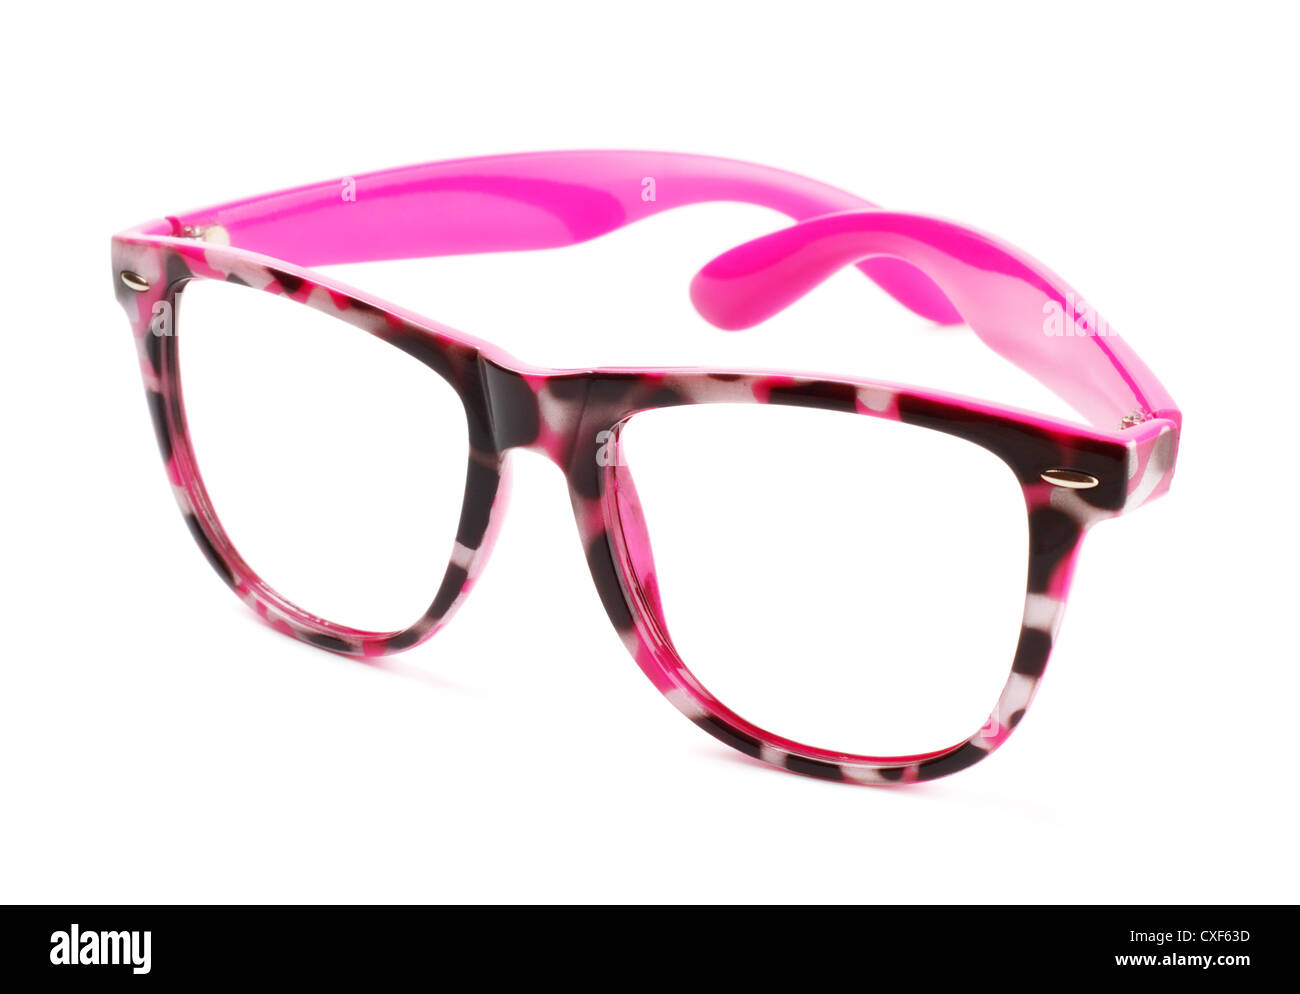 lunettes roses Photo Stock